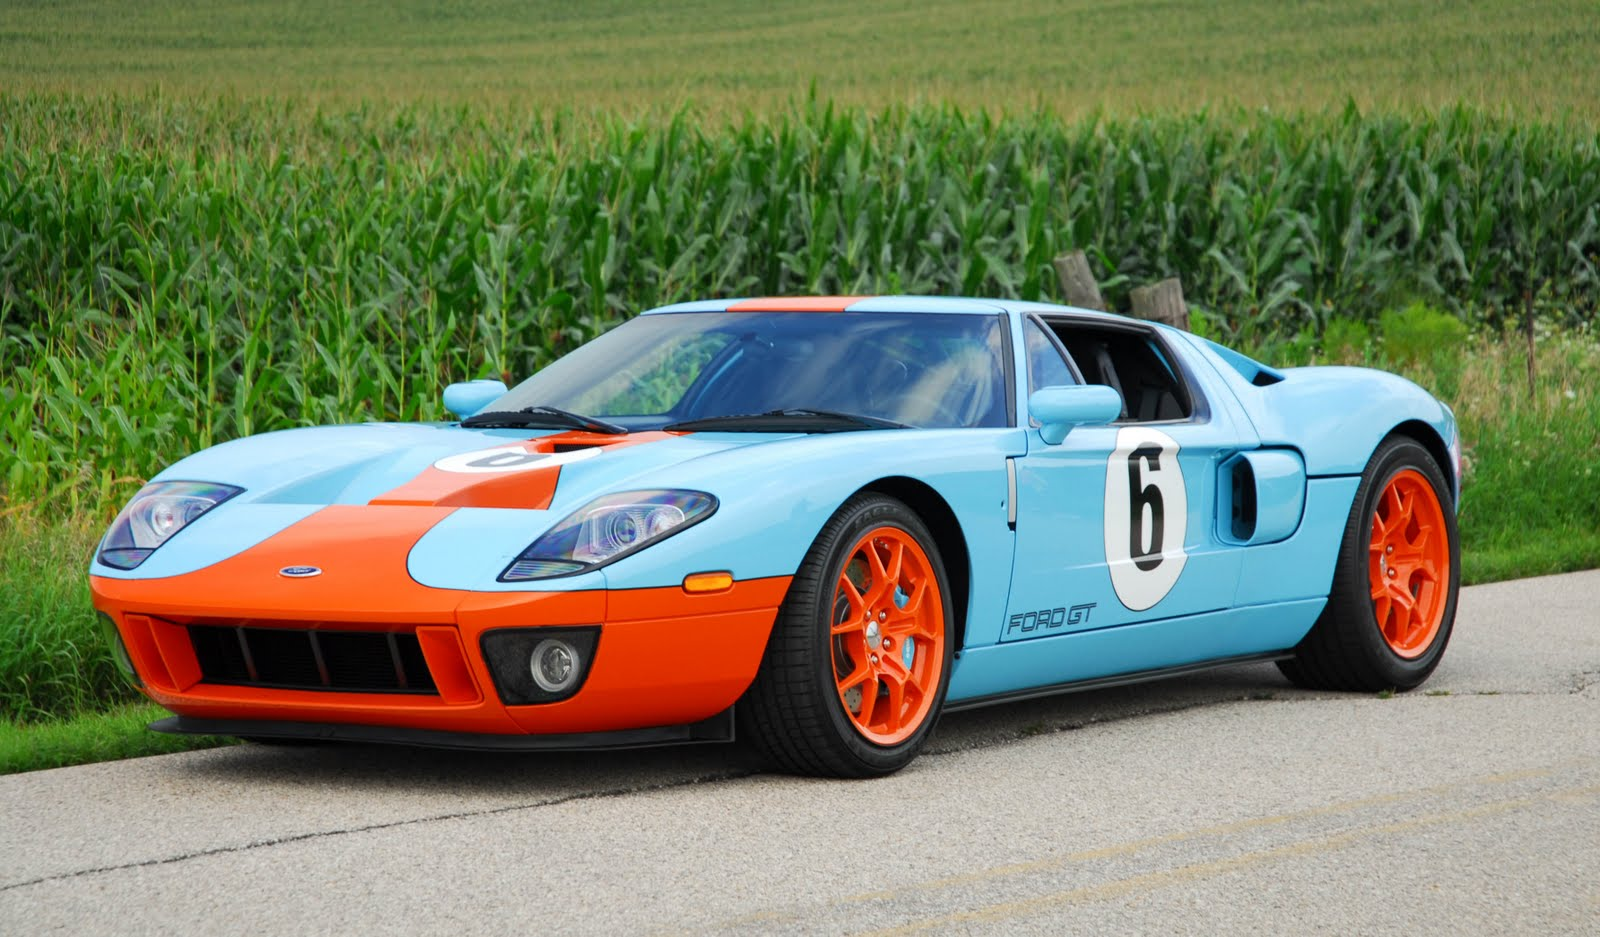 2006 Ford Gt Heritage Edition Sharp Carros Para